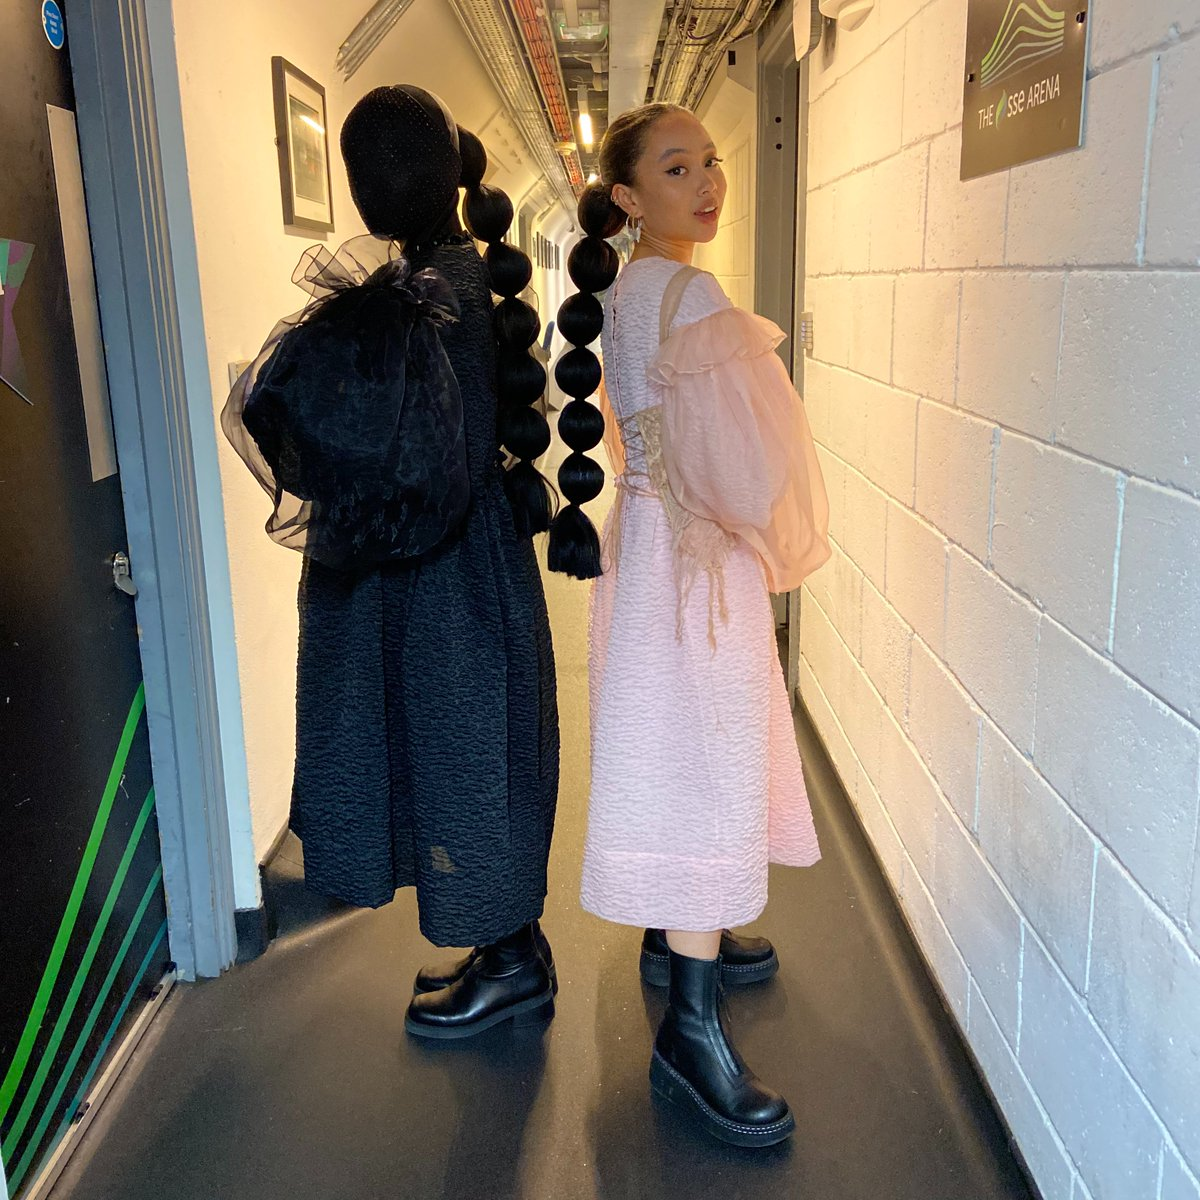 Me and my shadow had a lovely time at Wembley on Saturday for @BBCR1 out out! Watch here youtu.be/6Ou0kLid7n8